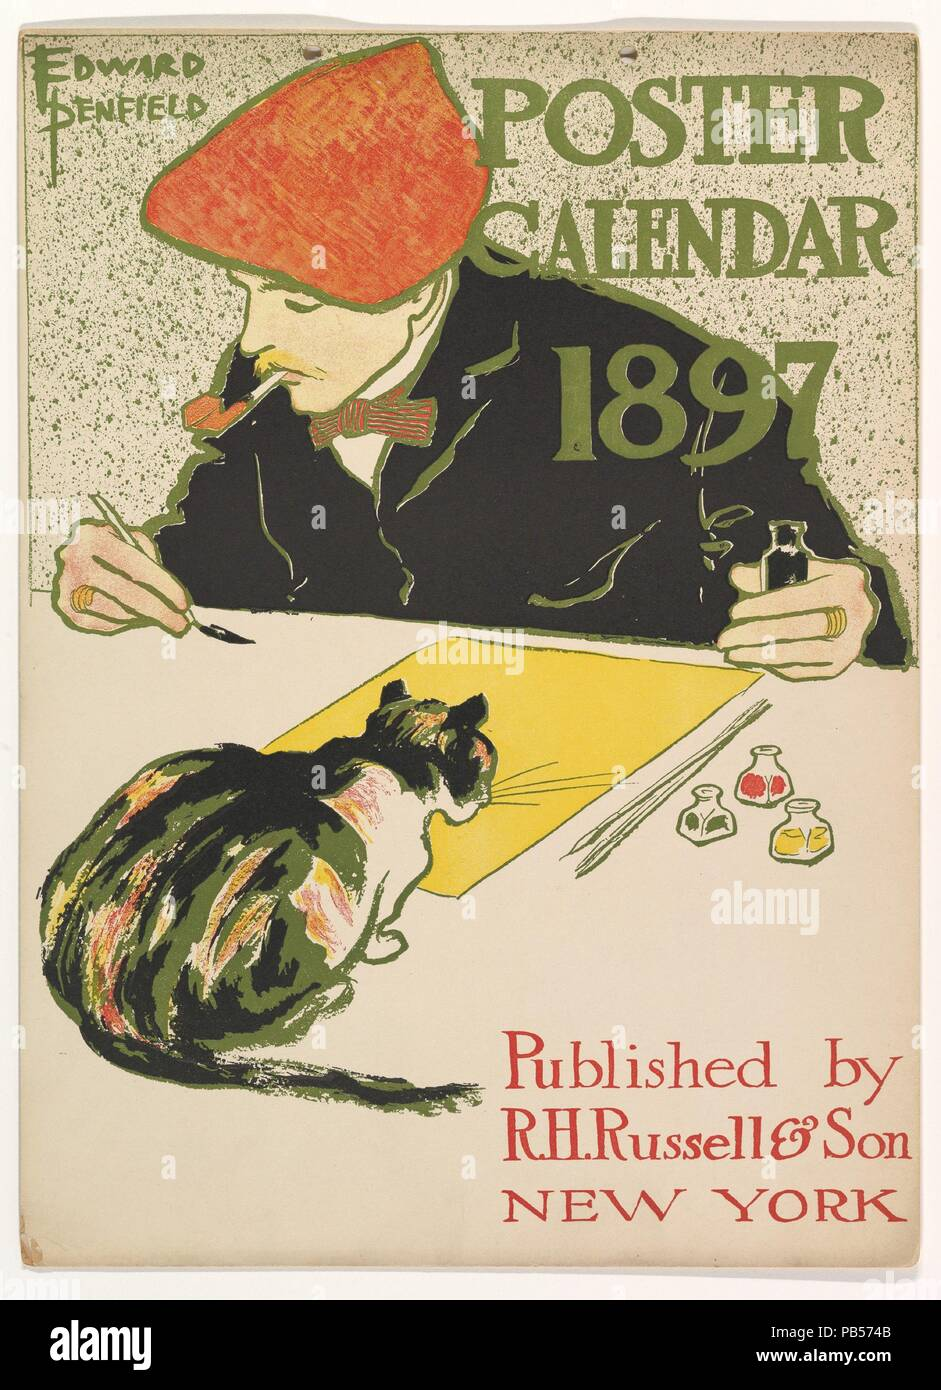 Cover for 1897 Calendar. Artist: Edward Penfield (American, Brooklyn, New York 1866-1925 Beacon, New York). Dimensions: 14 x 10 3/16 in.. Publisher: R. H. Russell (American, New York). Date: 1896. Museum: Metropolitan Museum of Art, New York, USA. - Stock Image